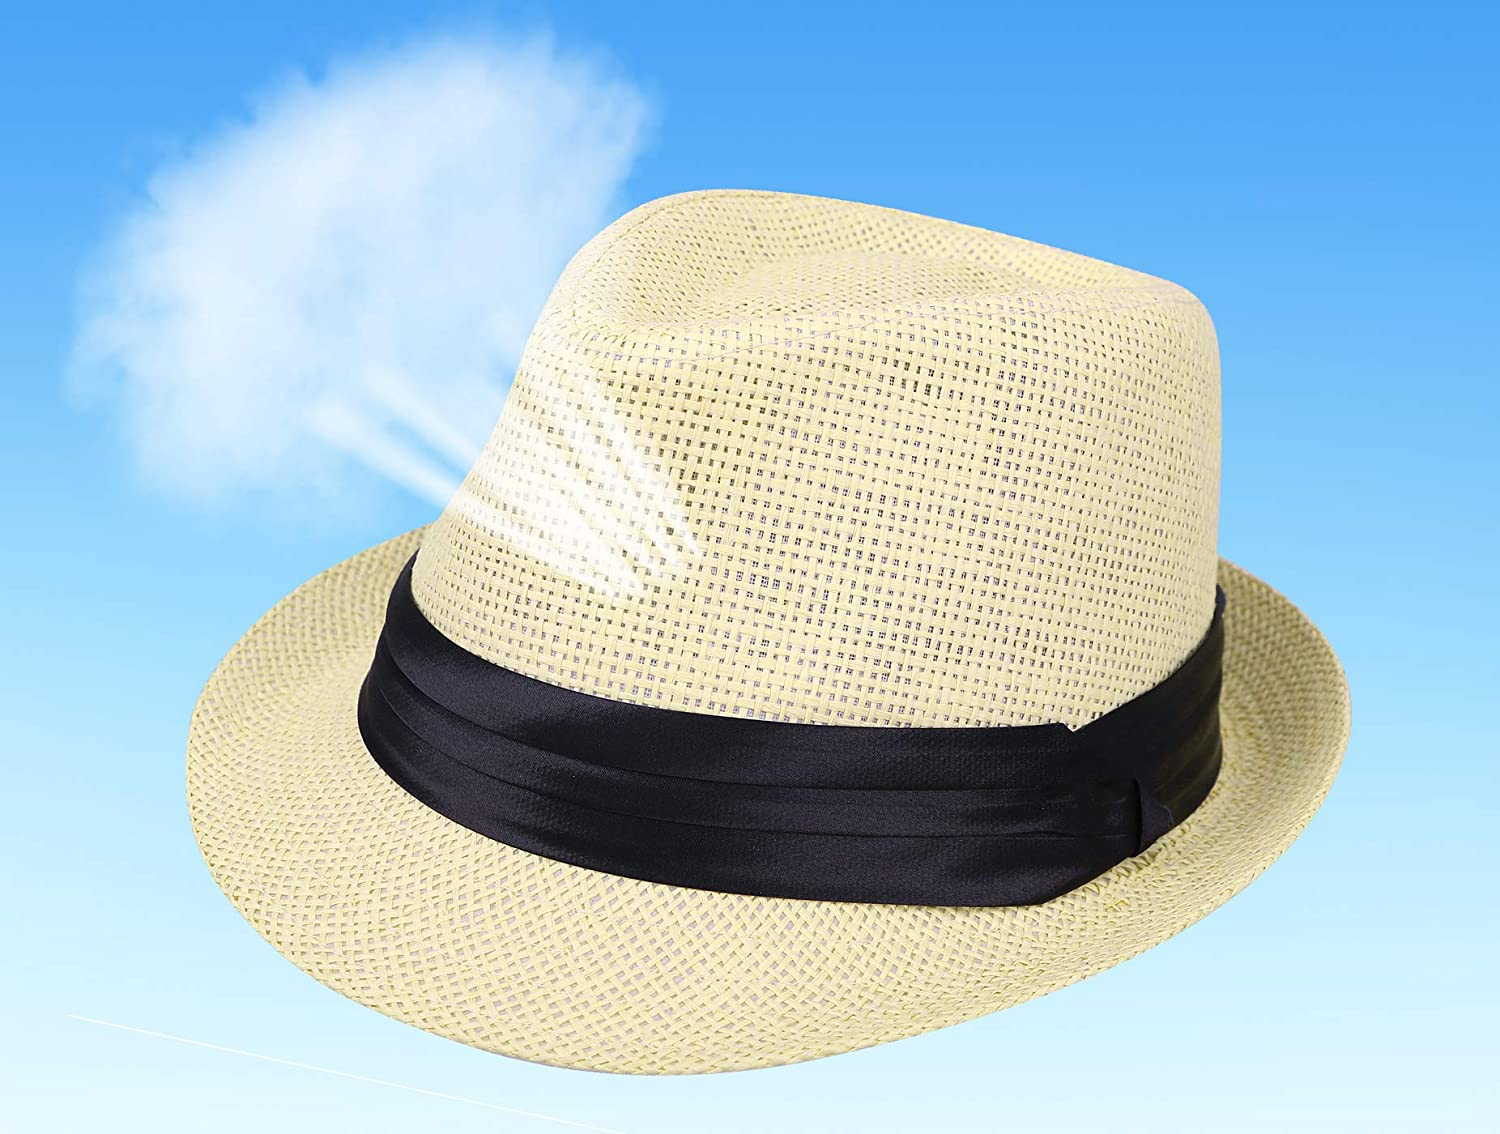 7acacf1280242e Amazon.com: Kids Fedora Hats Boys Straw Sun Hats for Kids with Black Band  Accent Beige: Clothing